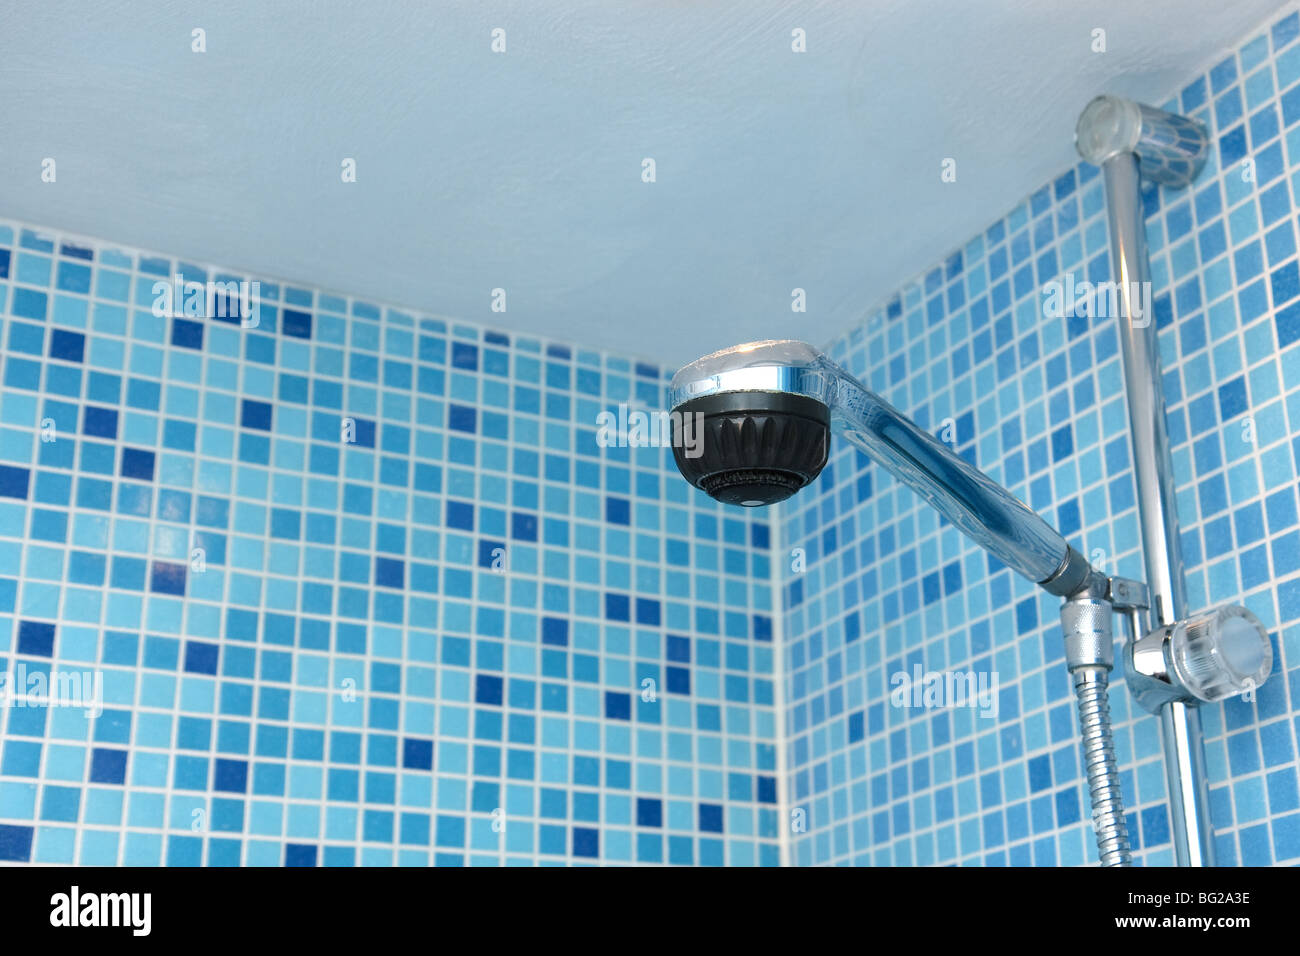 Shower Head In Bathroom Of Blue Mosaic Tiles Stock Photo